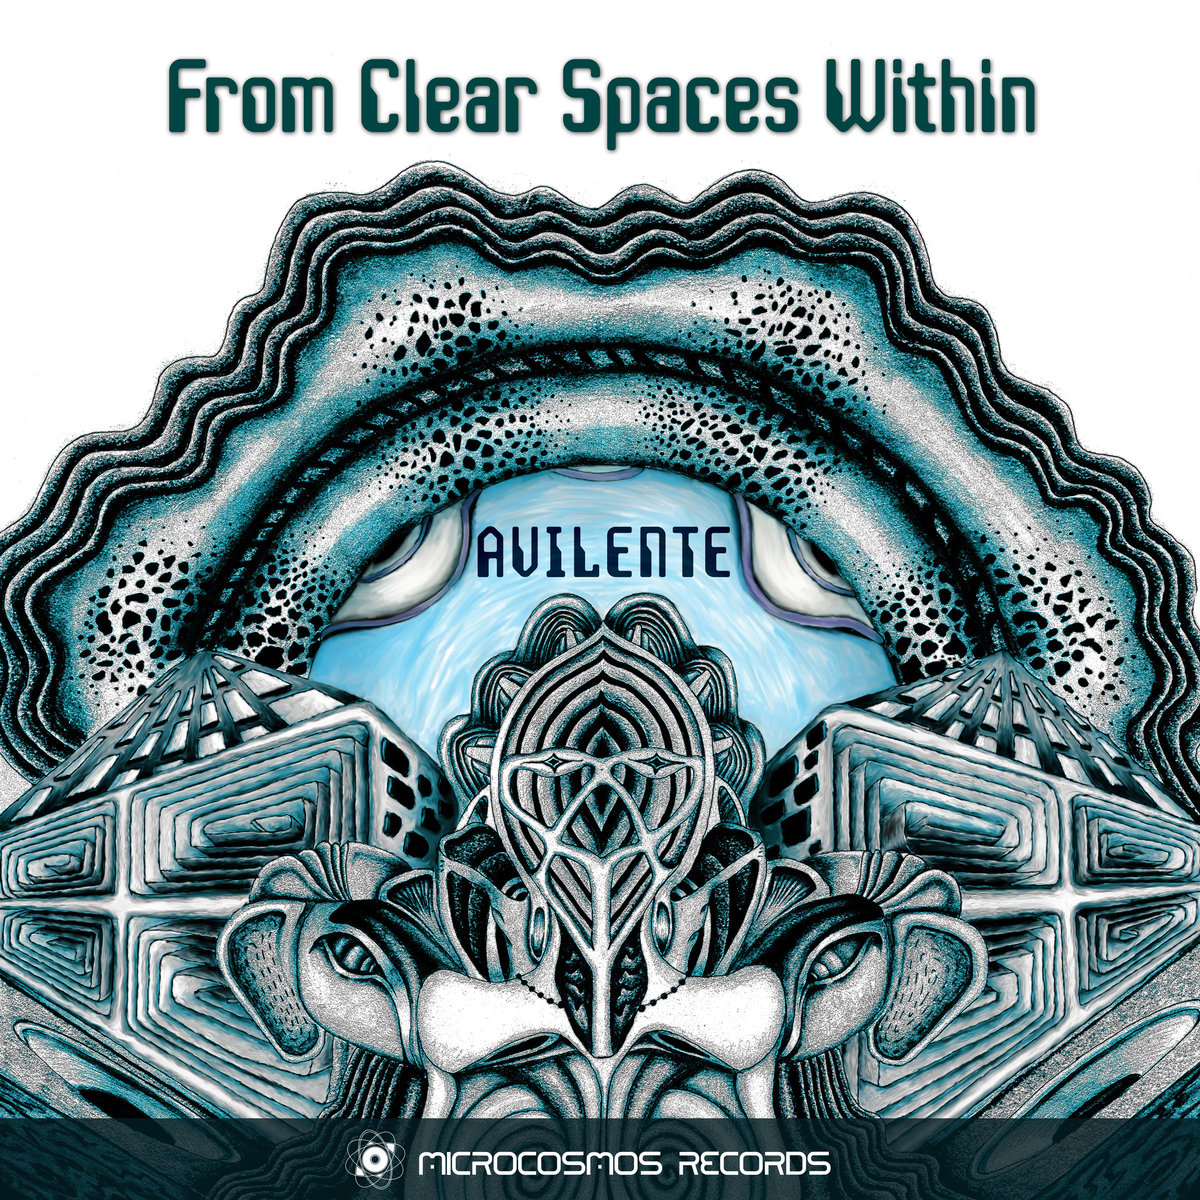 Avilente - Little Rivers @ 'From Clear Spaces Within' album (ambient, chill-out)